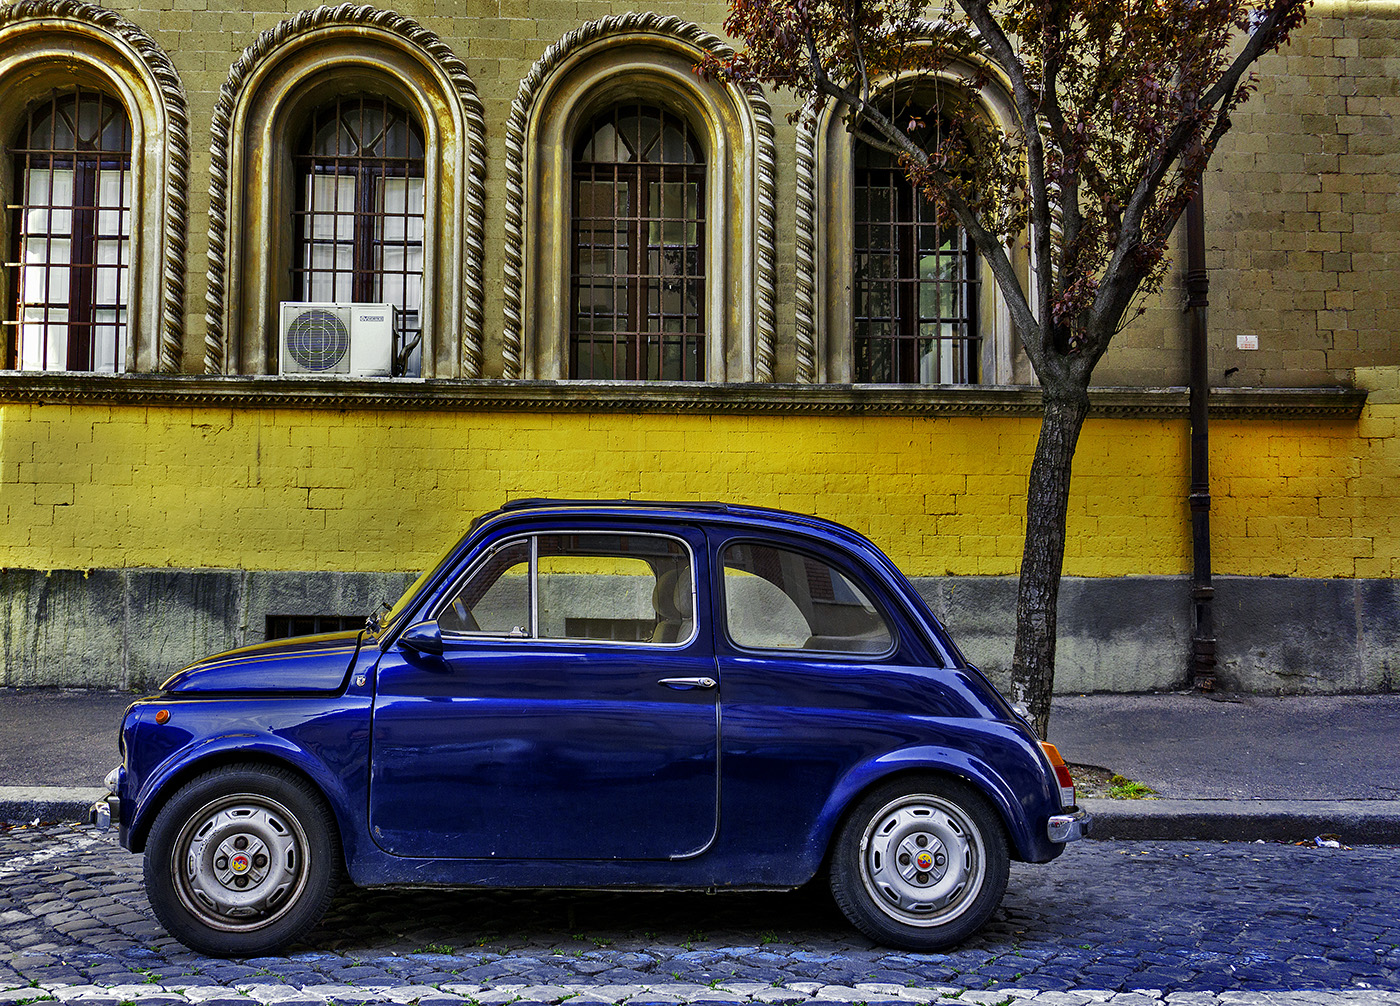 Classic Fiat 500 in Rome Italy